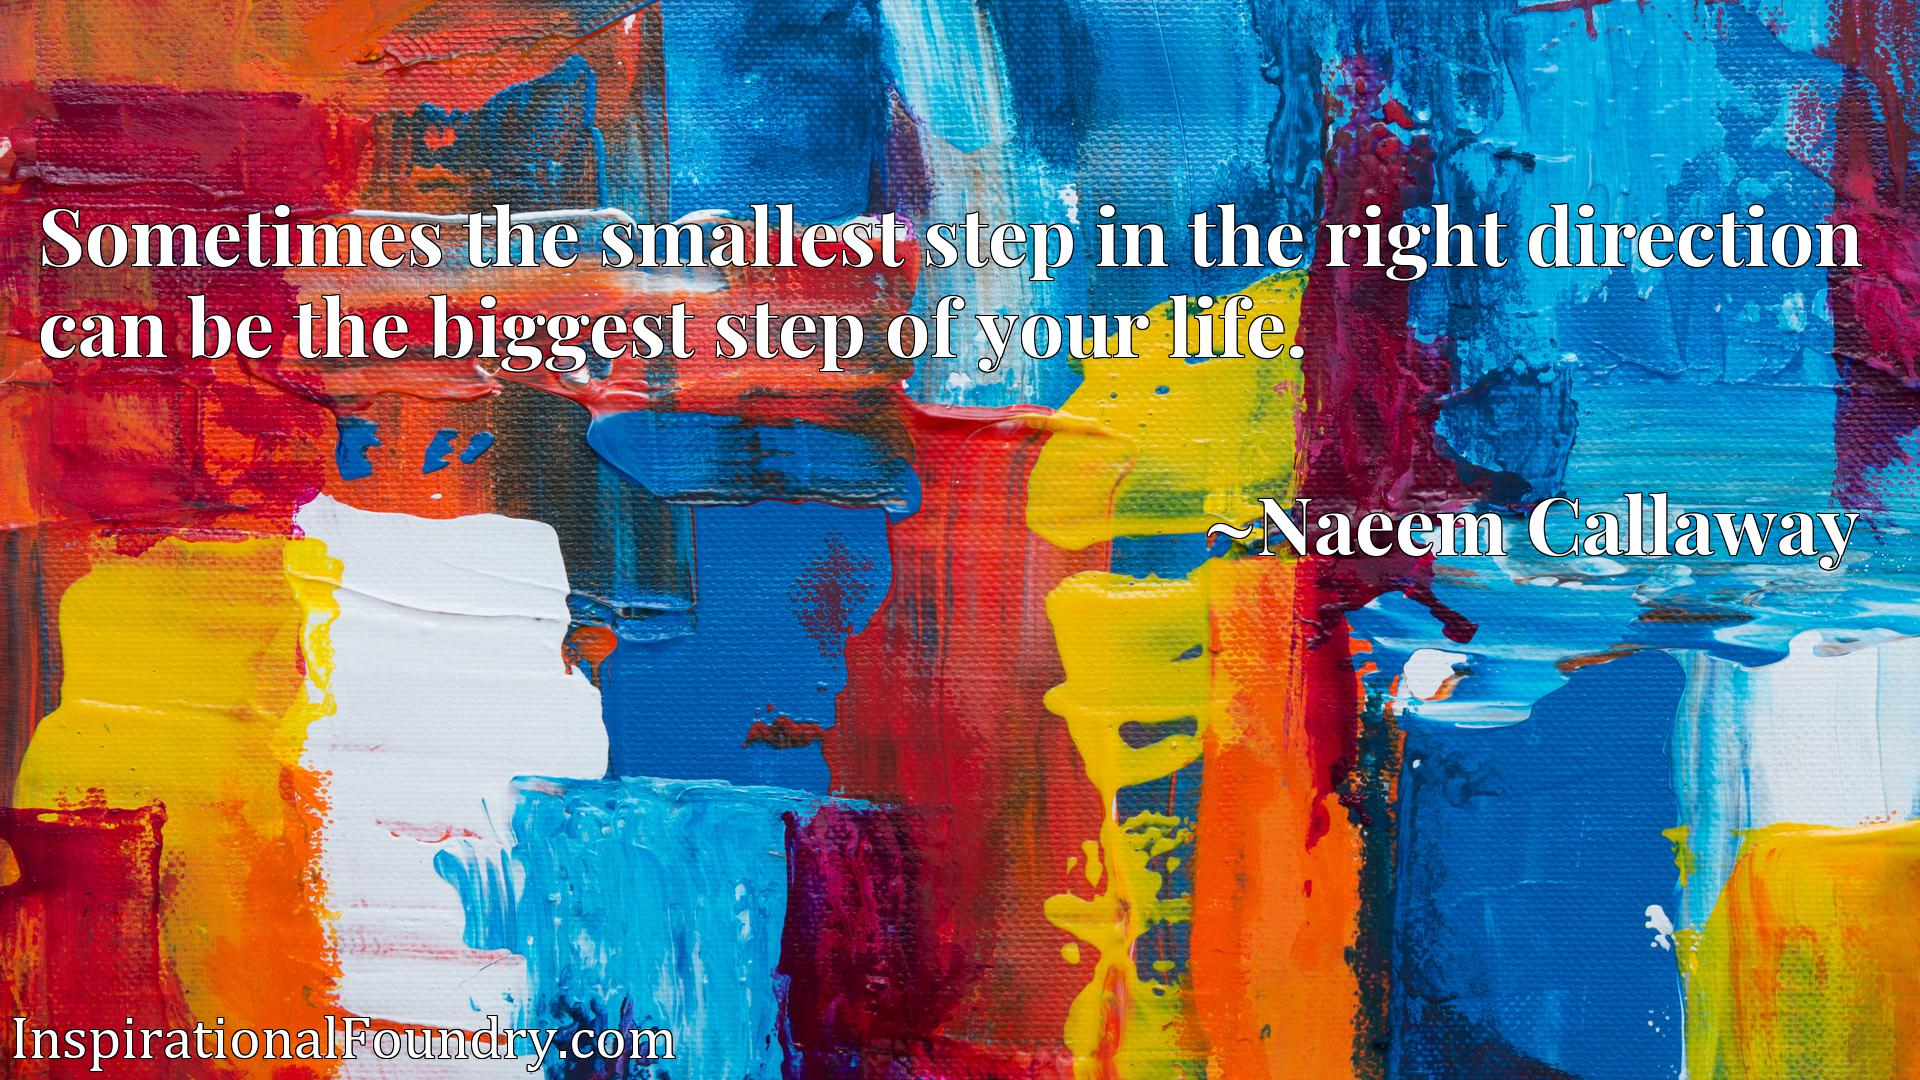 Sometimes the smallest step in the right direction can be the biggest step of your life.